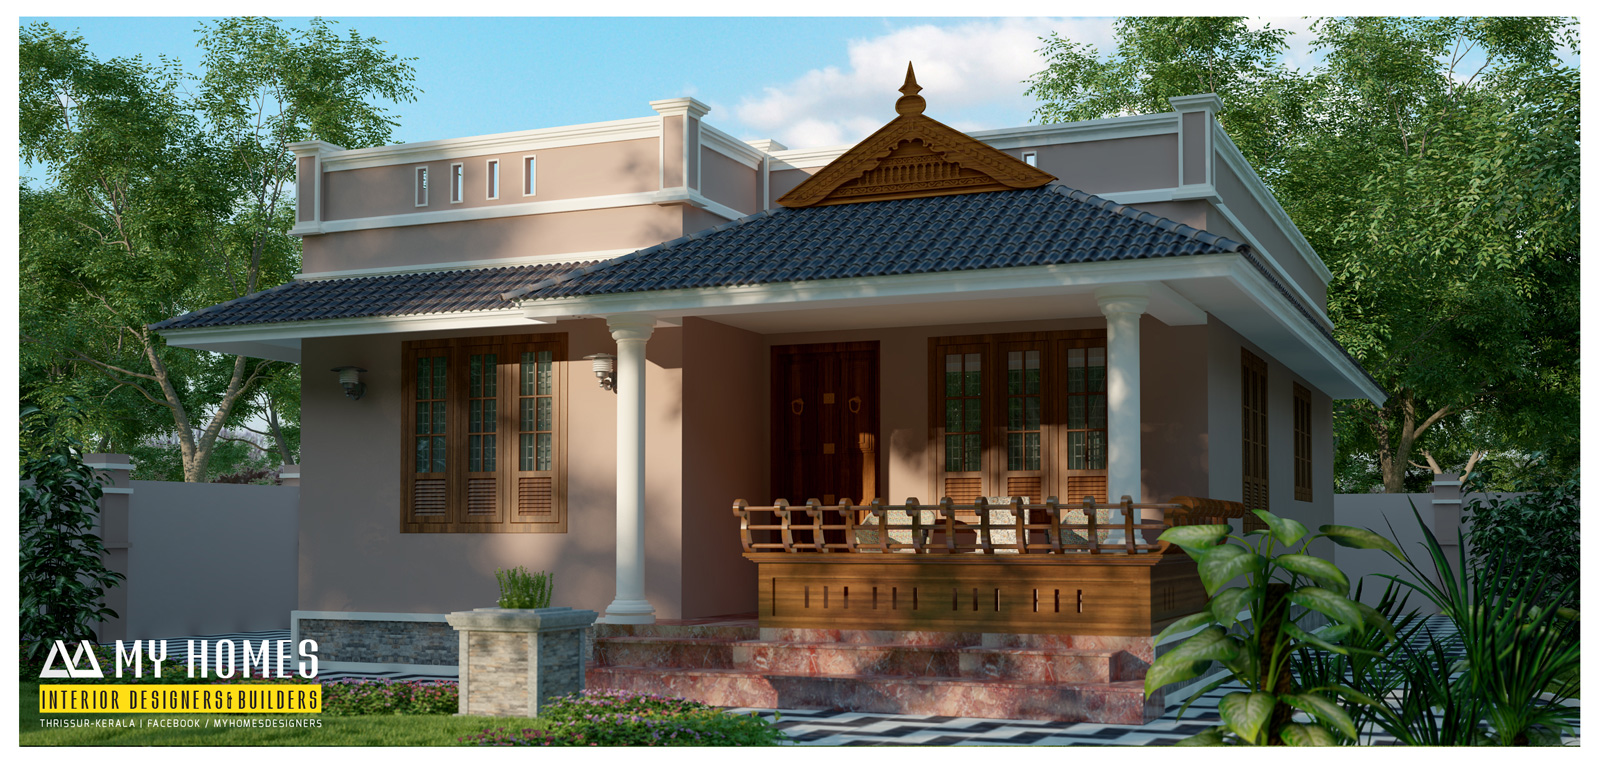 Low budget houses in kerala from my homes designers thrissur Low budget home design ideas